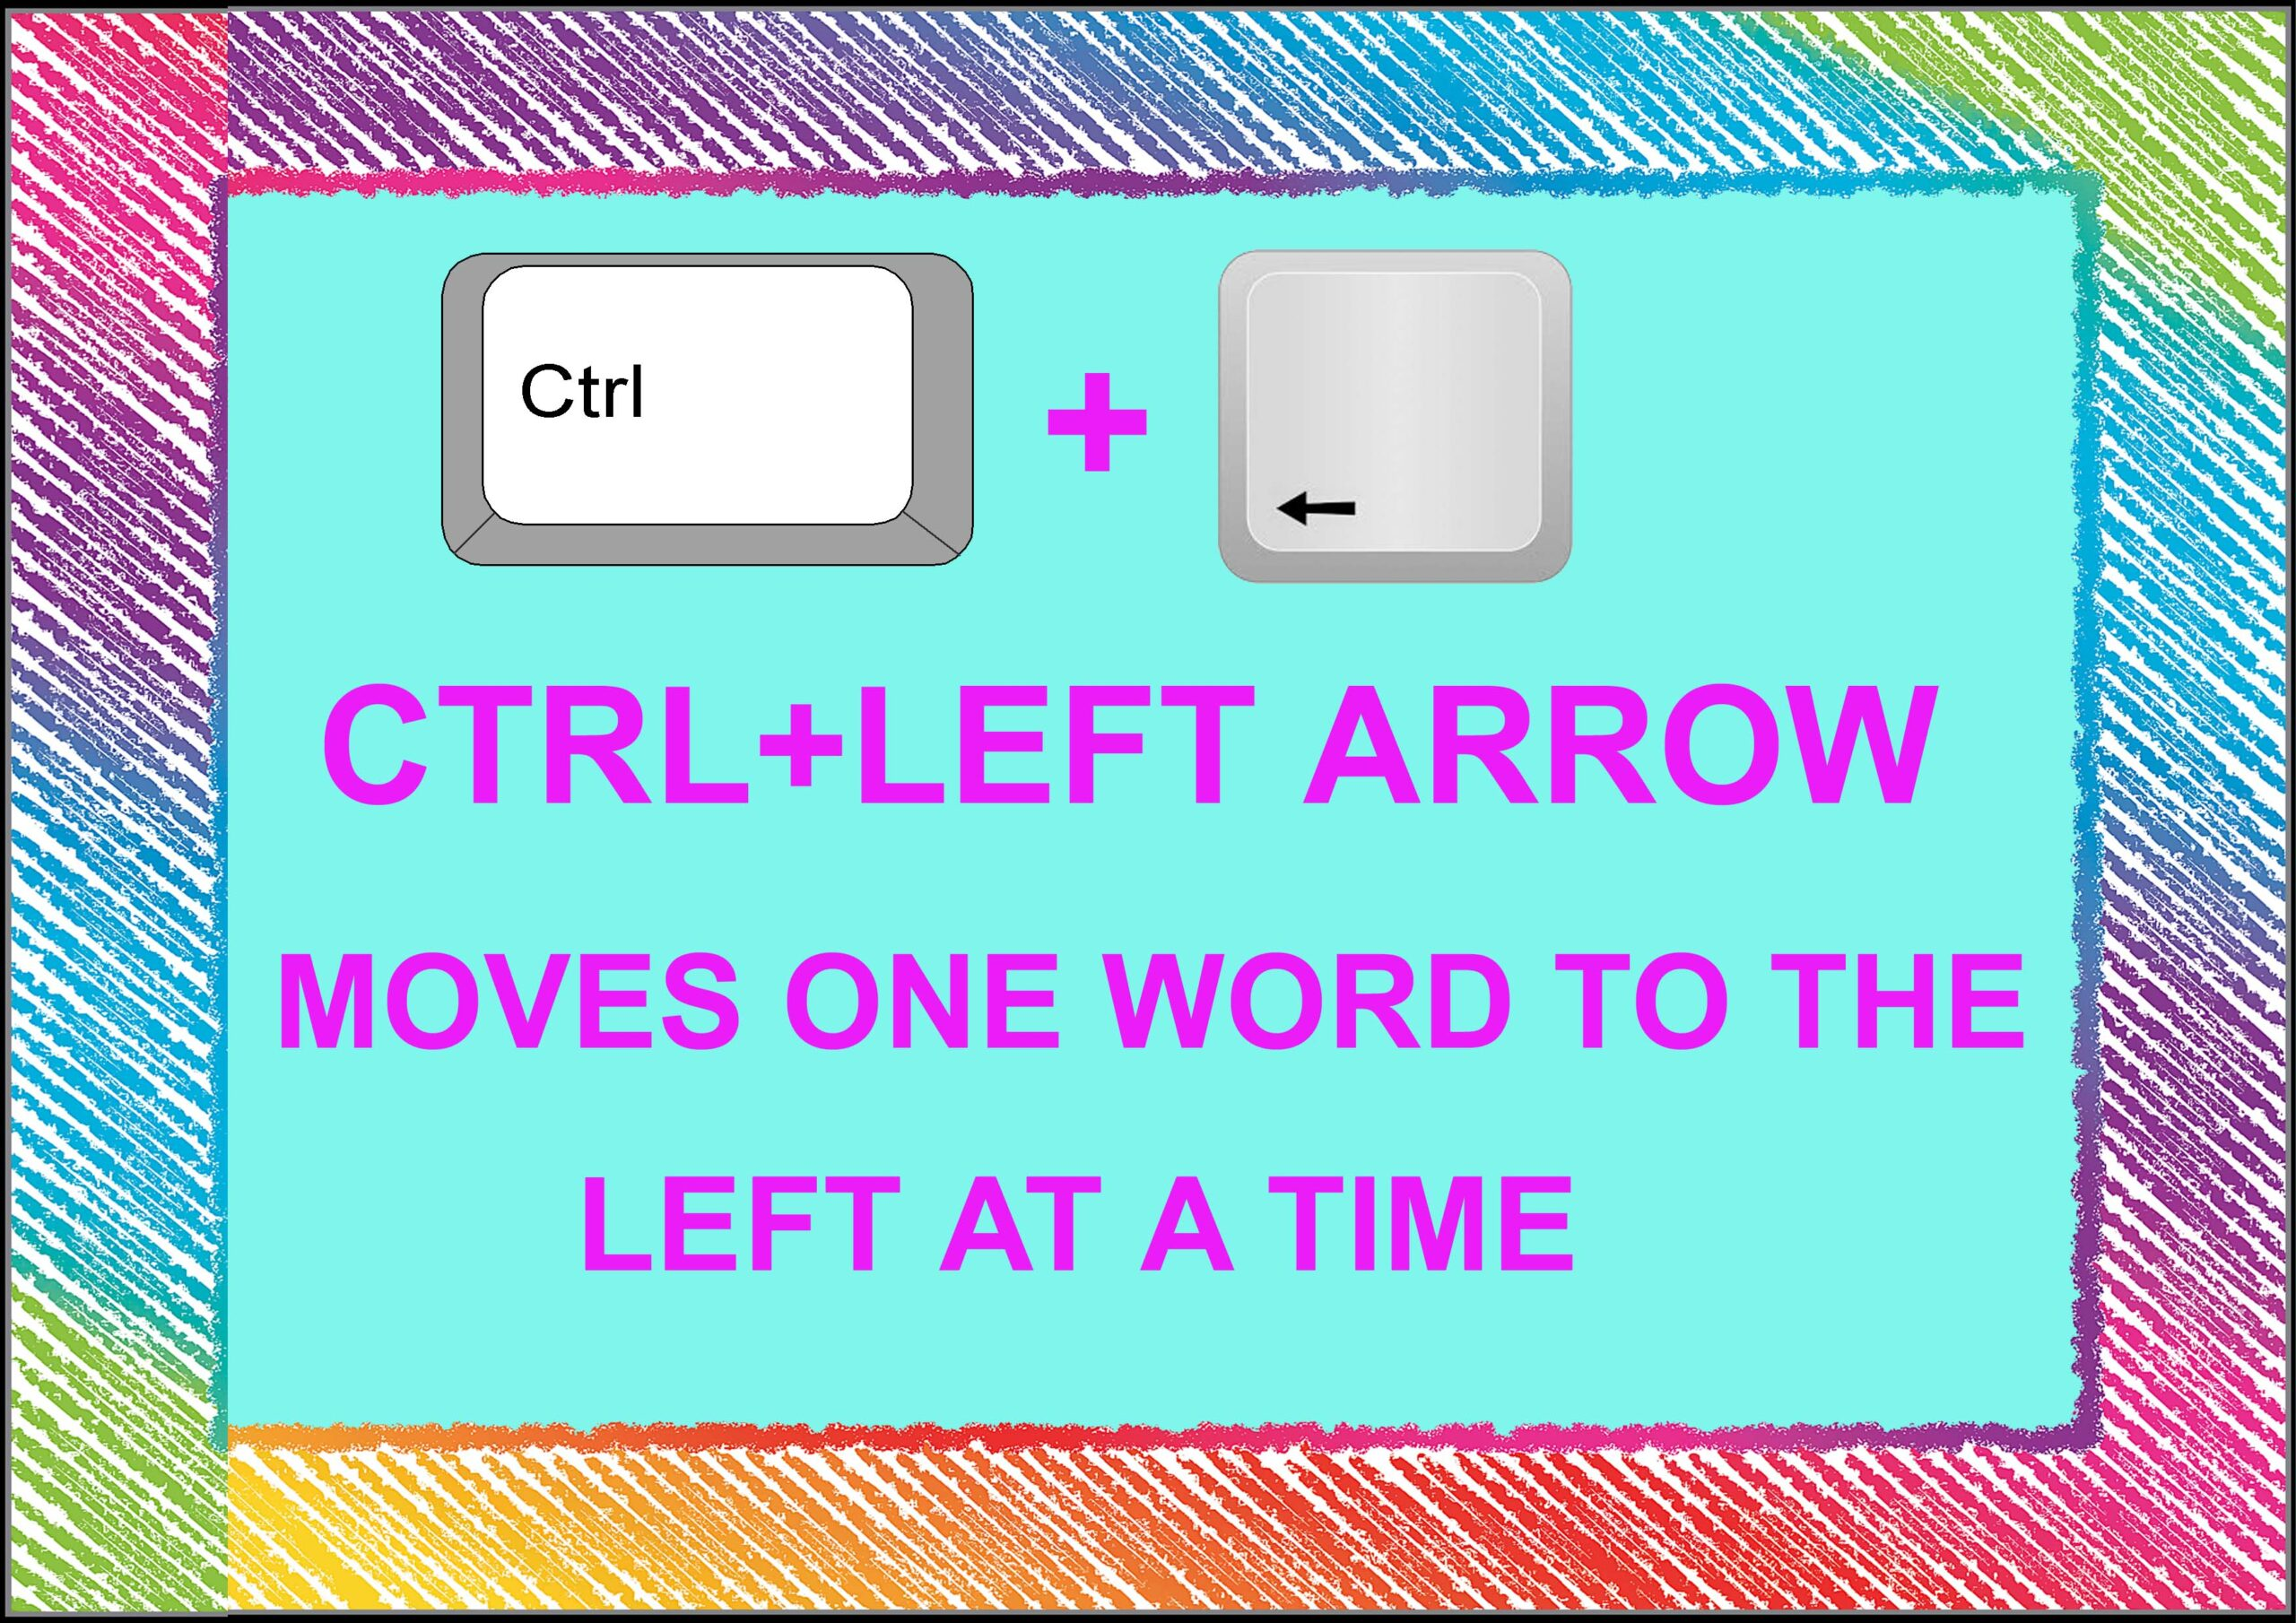 Ctrl+ Left Arrow= Moves One Word To The Left At A Time